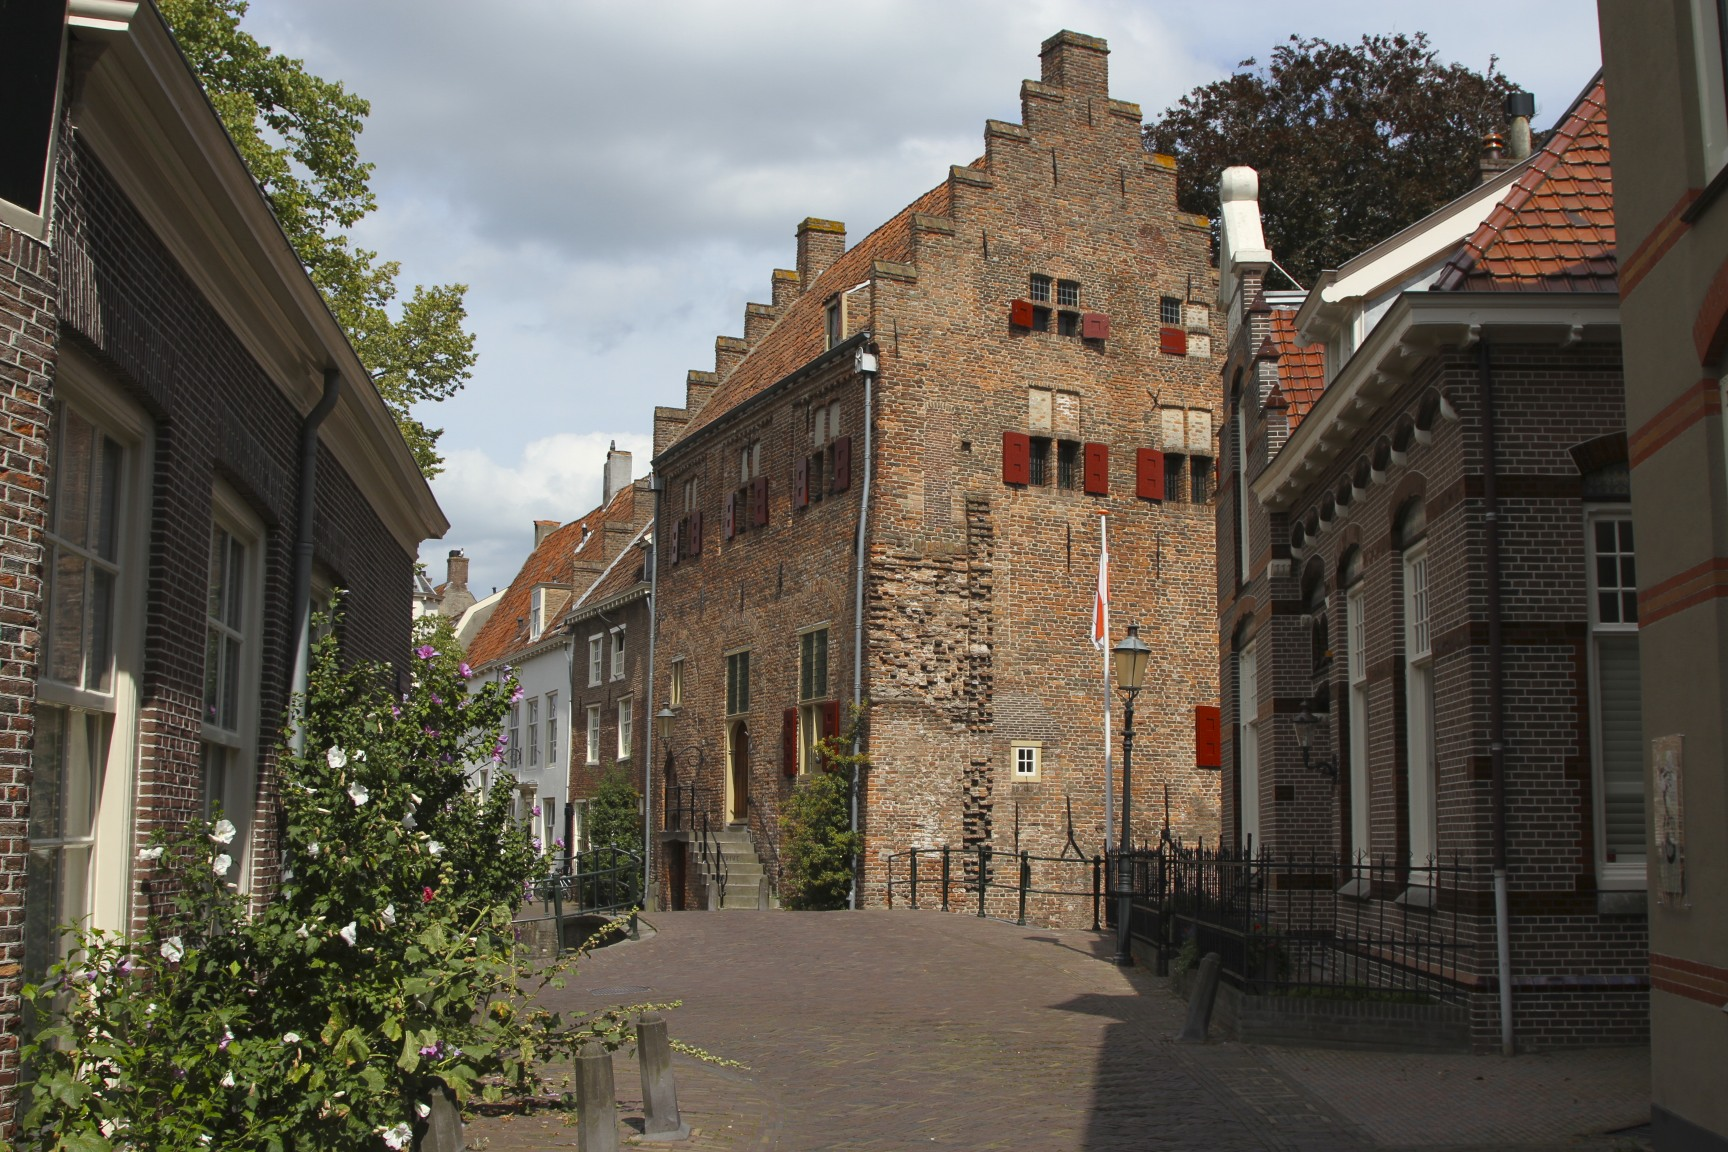 An amble through medieval Amersfoort | notesfromcamelidcountry